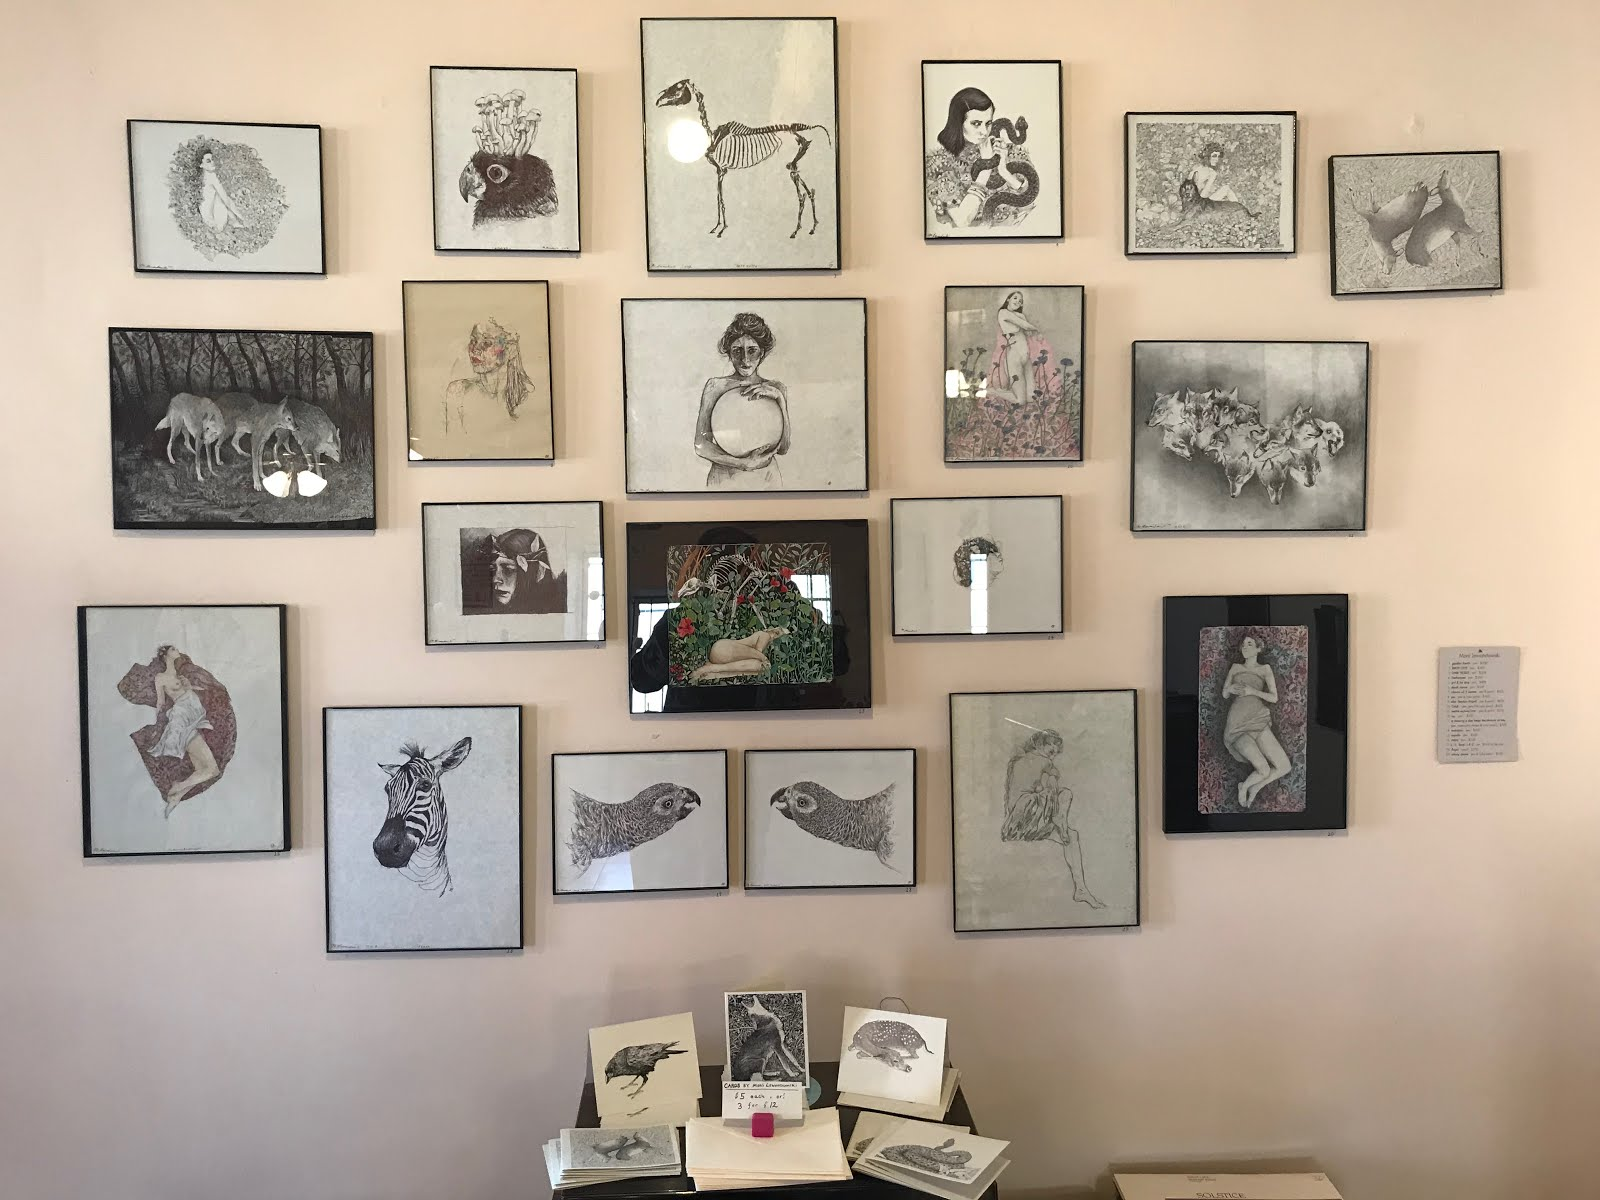 Two graces taos taos shopping guide for hipsters top ten shops in a wall full of affordable artwork solutioingenieria Images